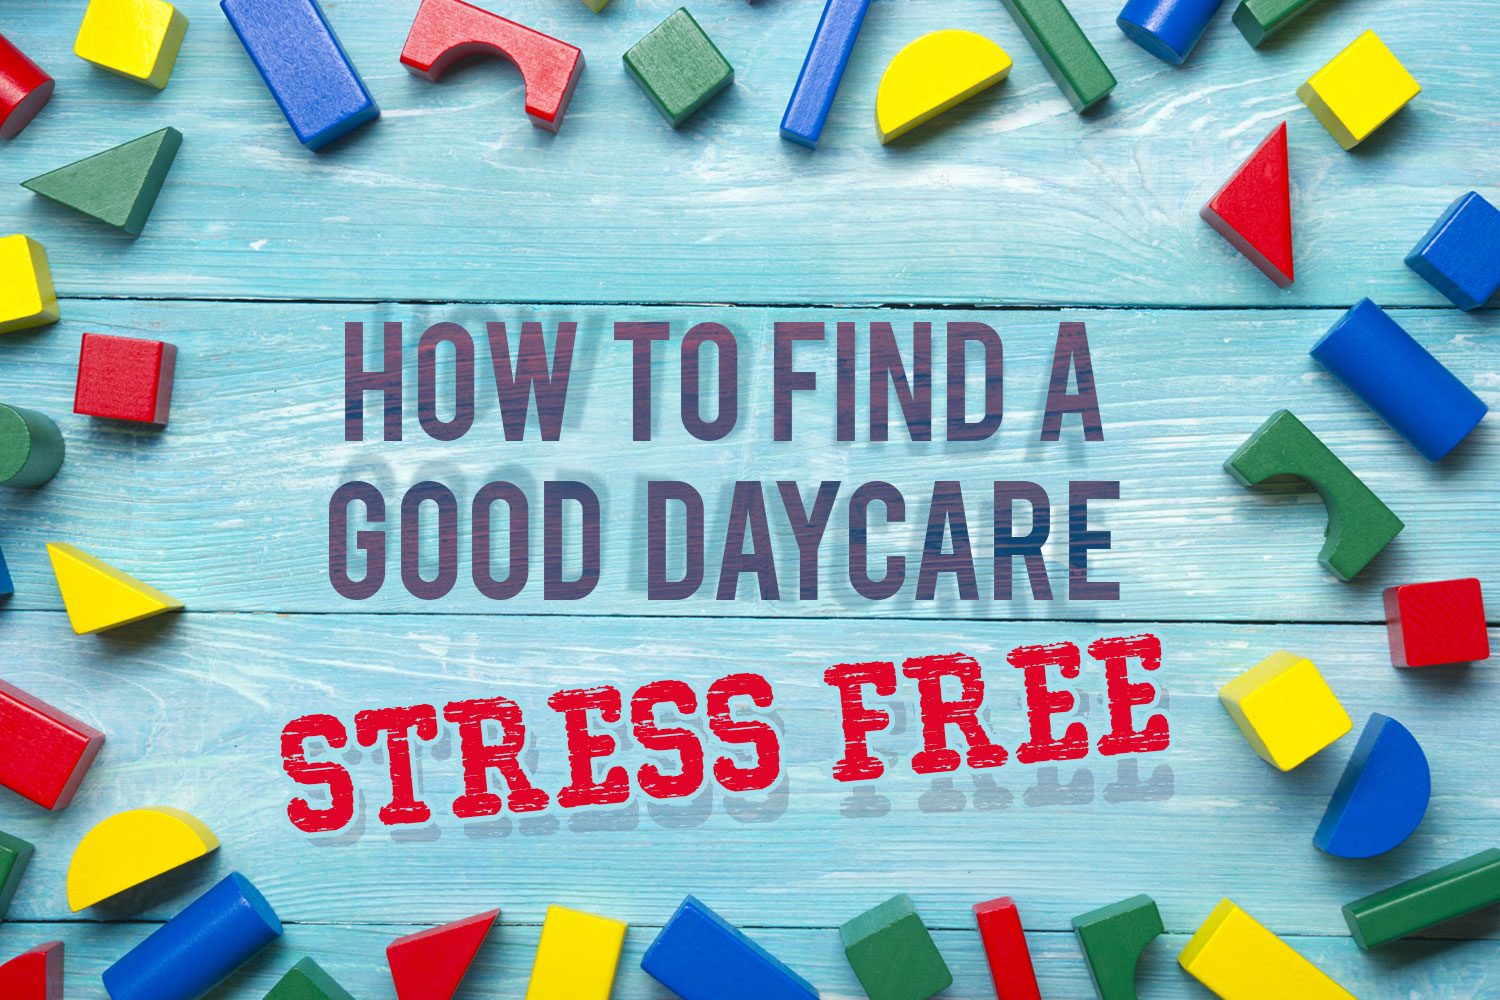 How to Find a Good Daycare Without the Stress